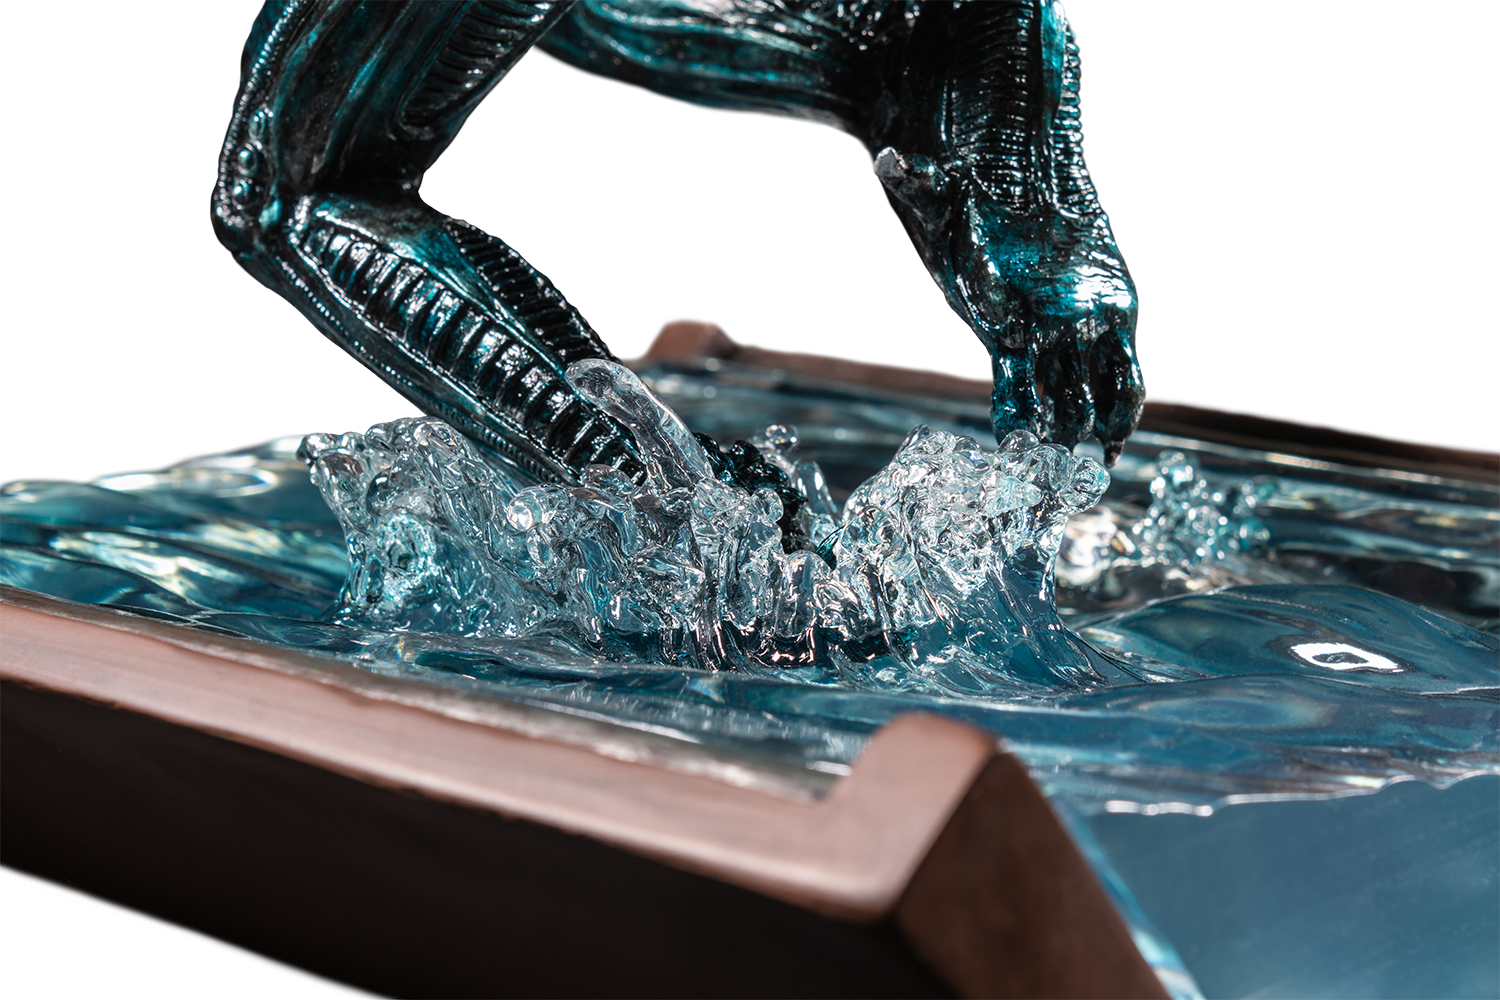 IKO1124-Alien-in-Water-Statue-New-Paint-16-217.png